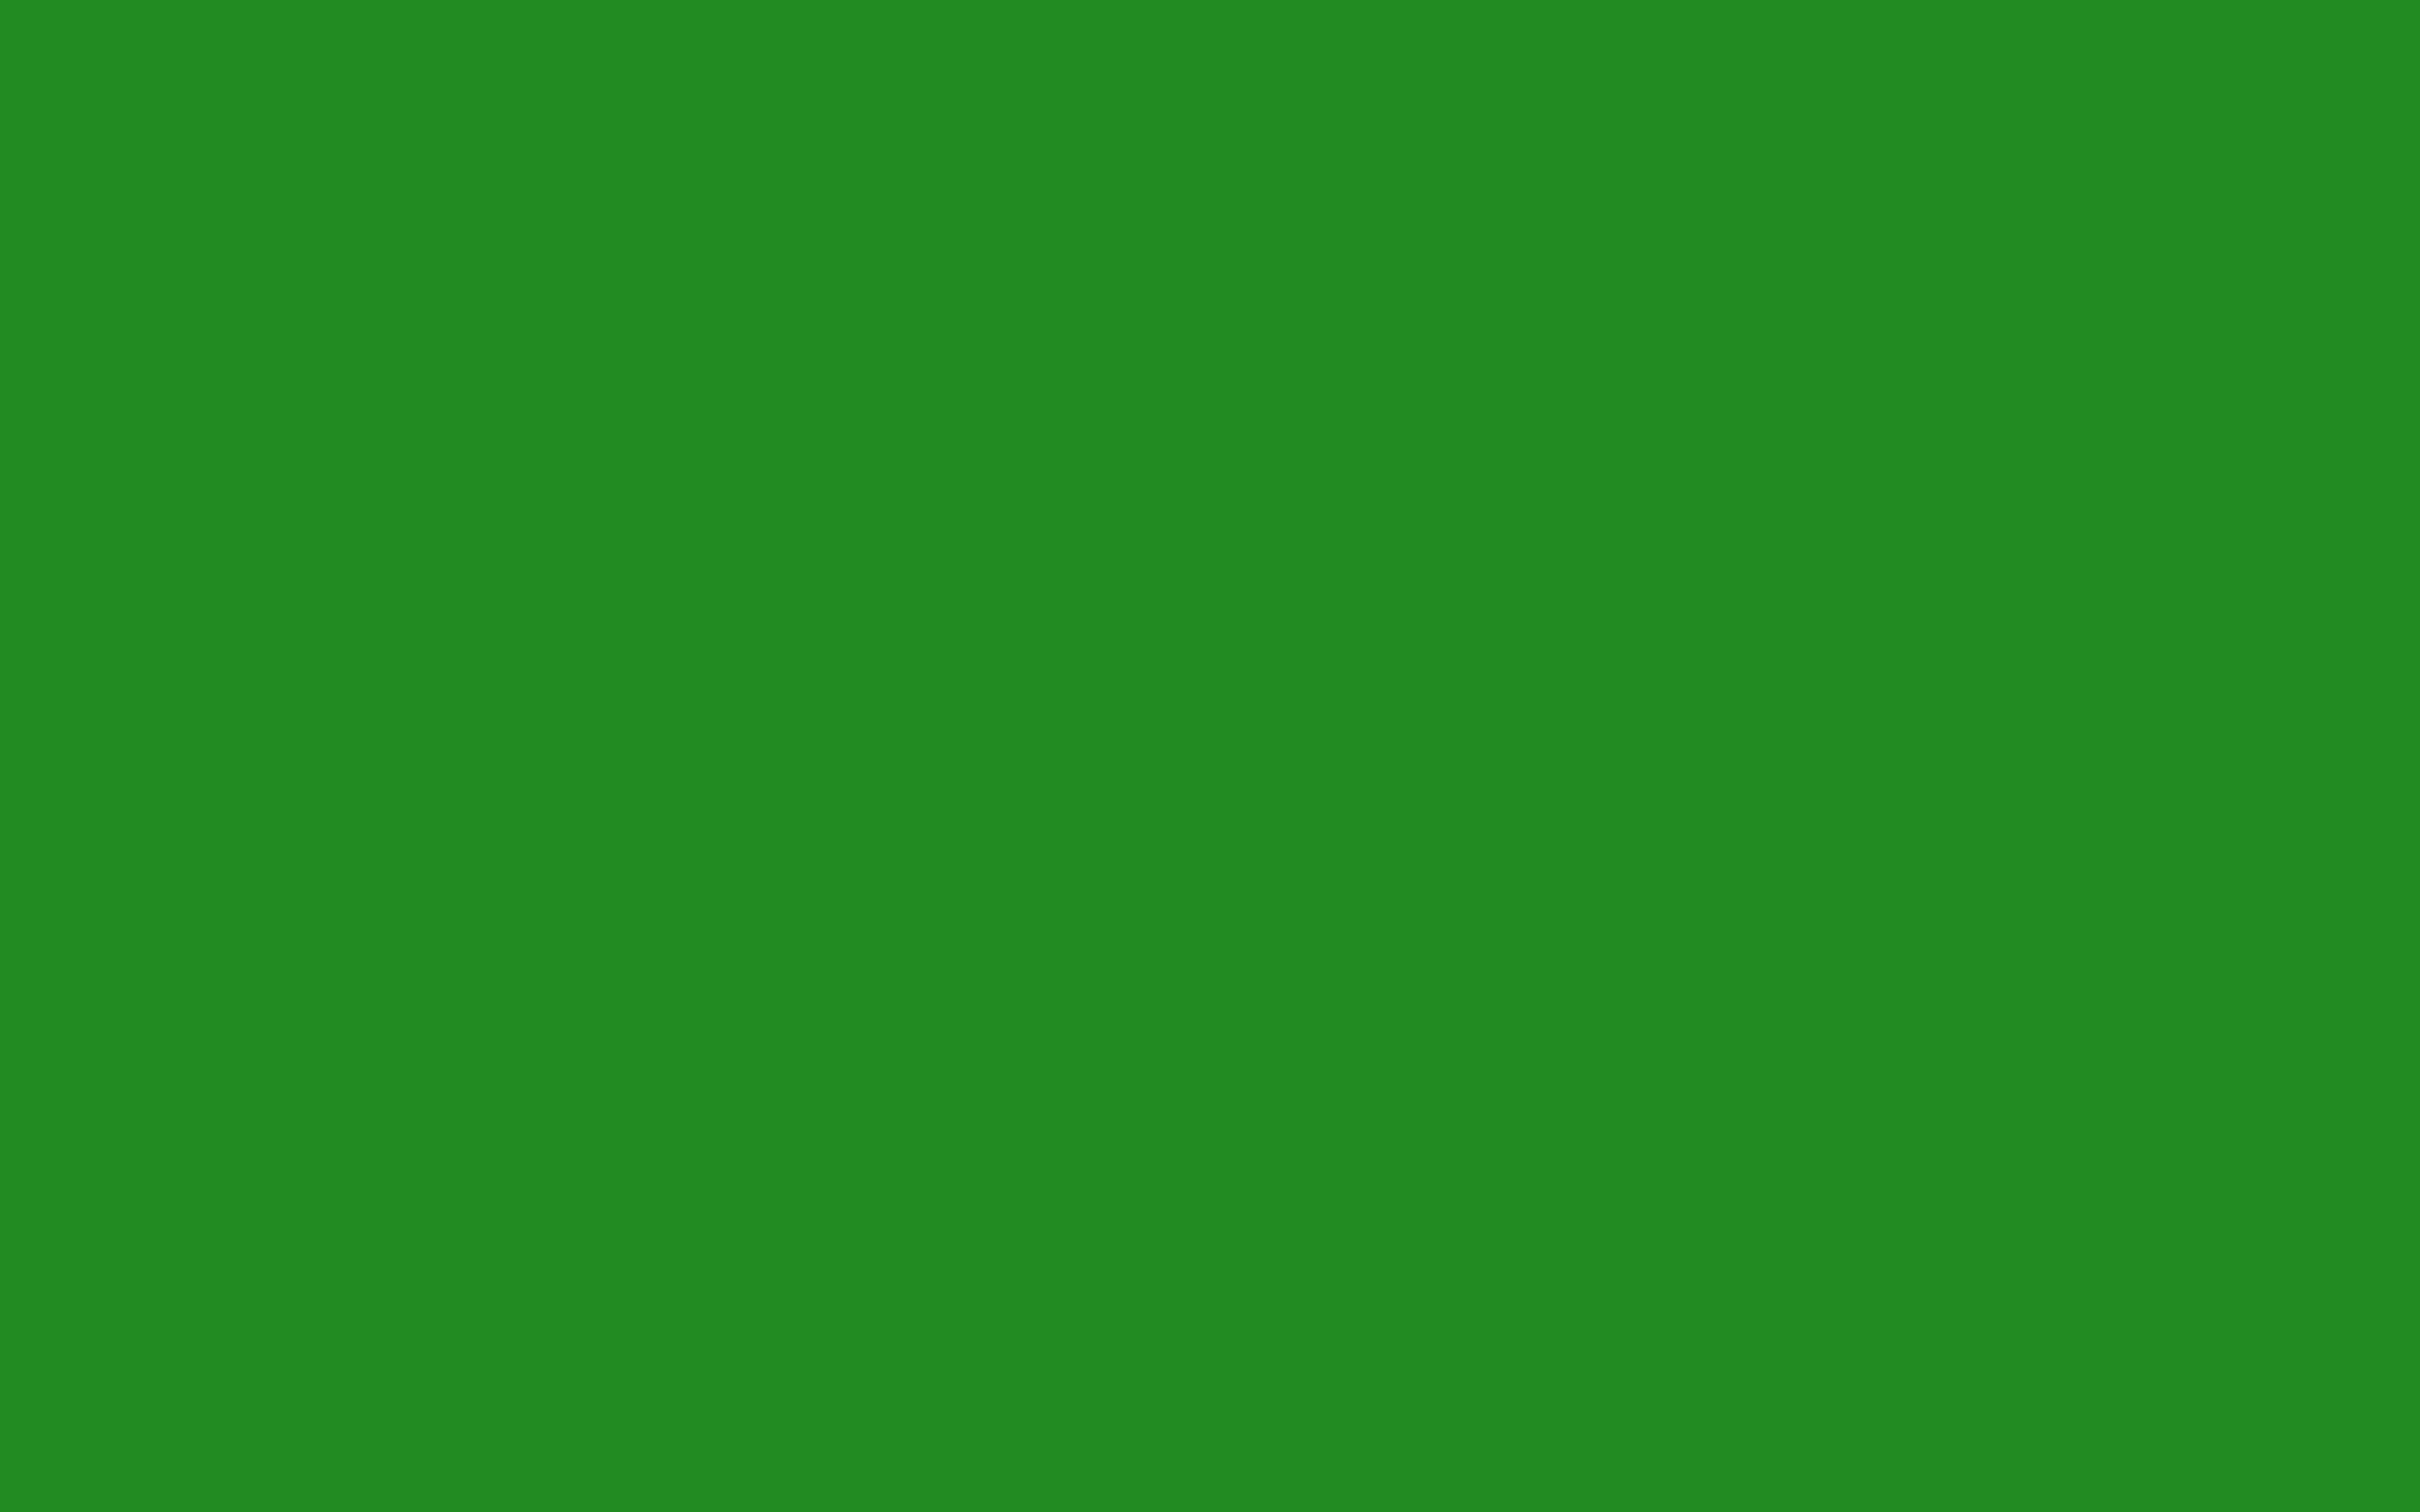 2560x1600 Forest Green For Web Solid Color Background